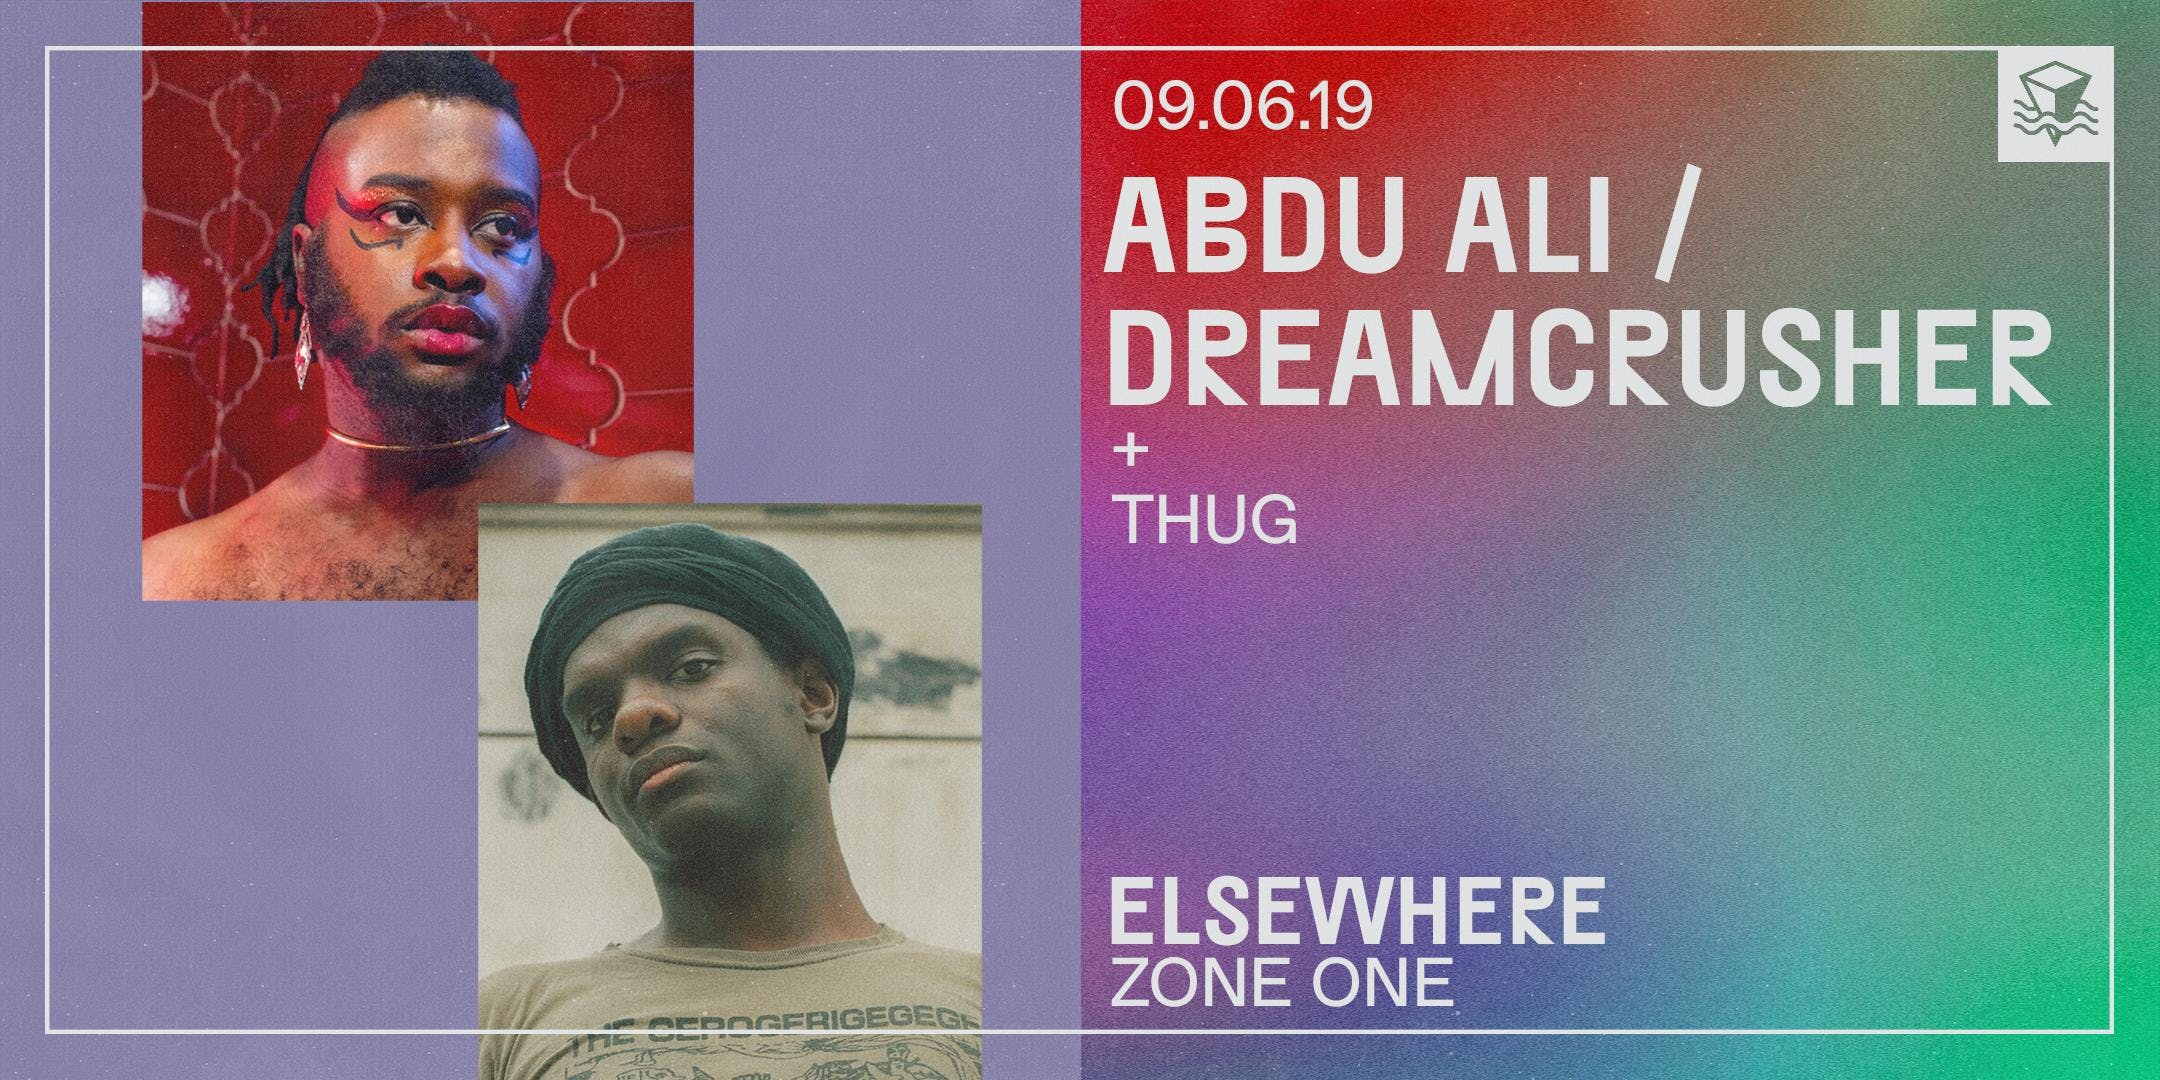 Abdu Ali + Dreamcrusher